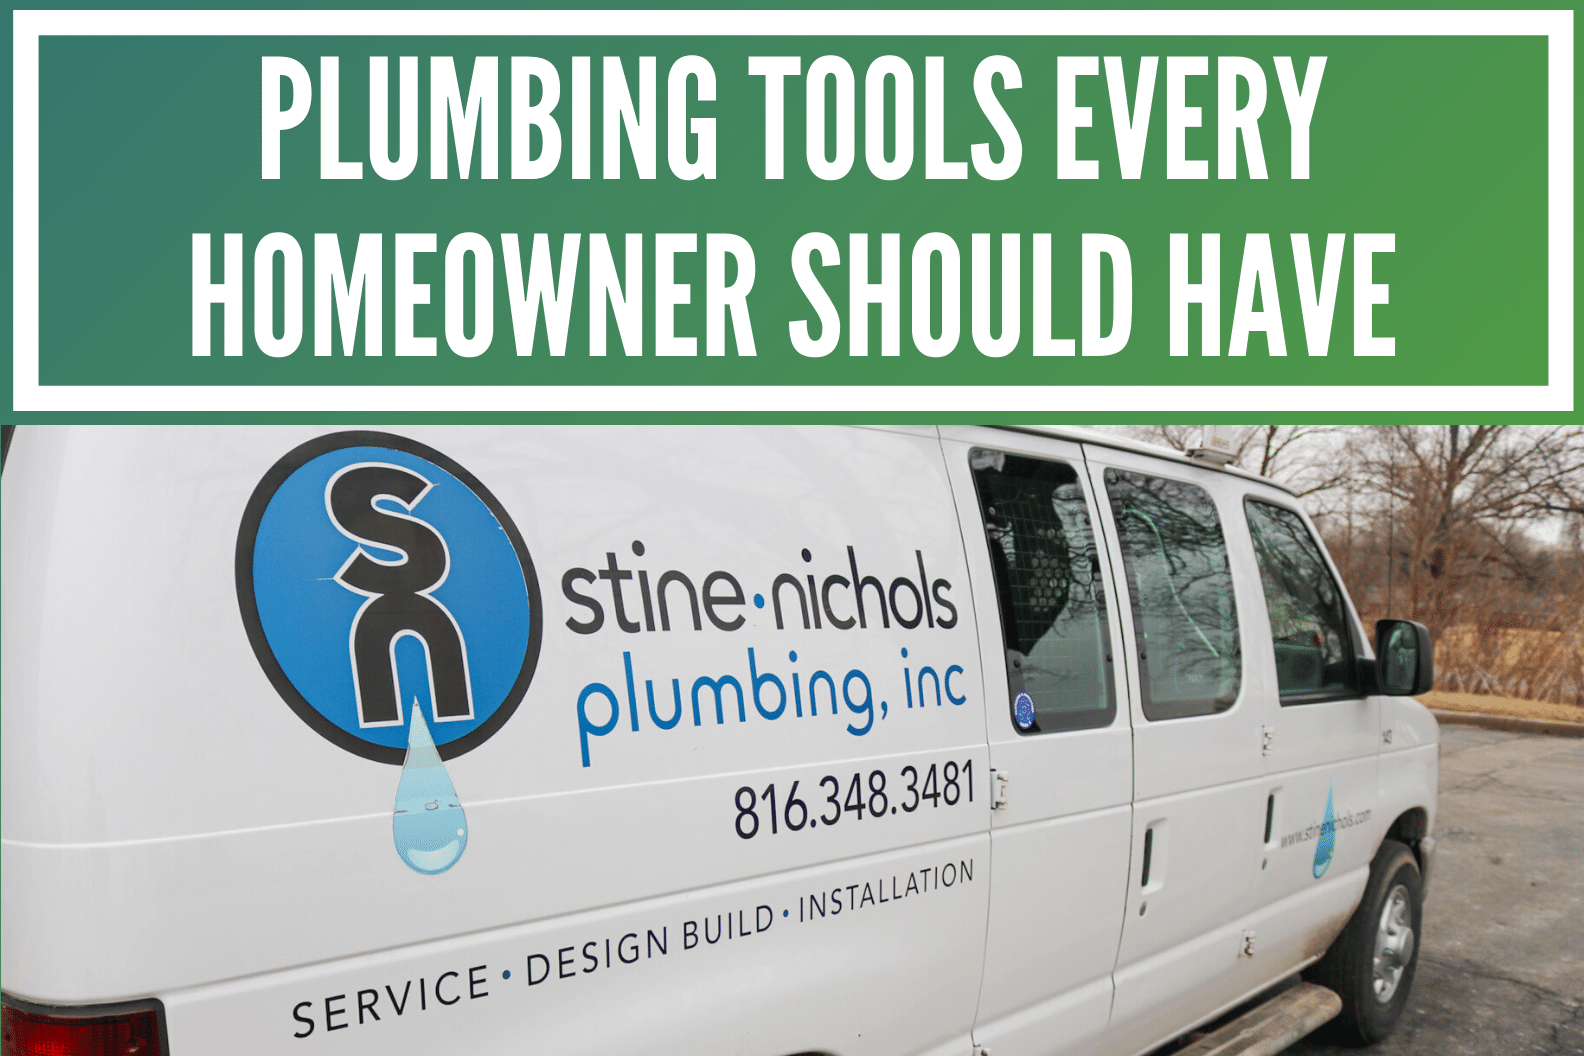 Plumbing Tools Every Homeowner Should Have